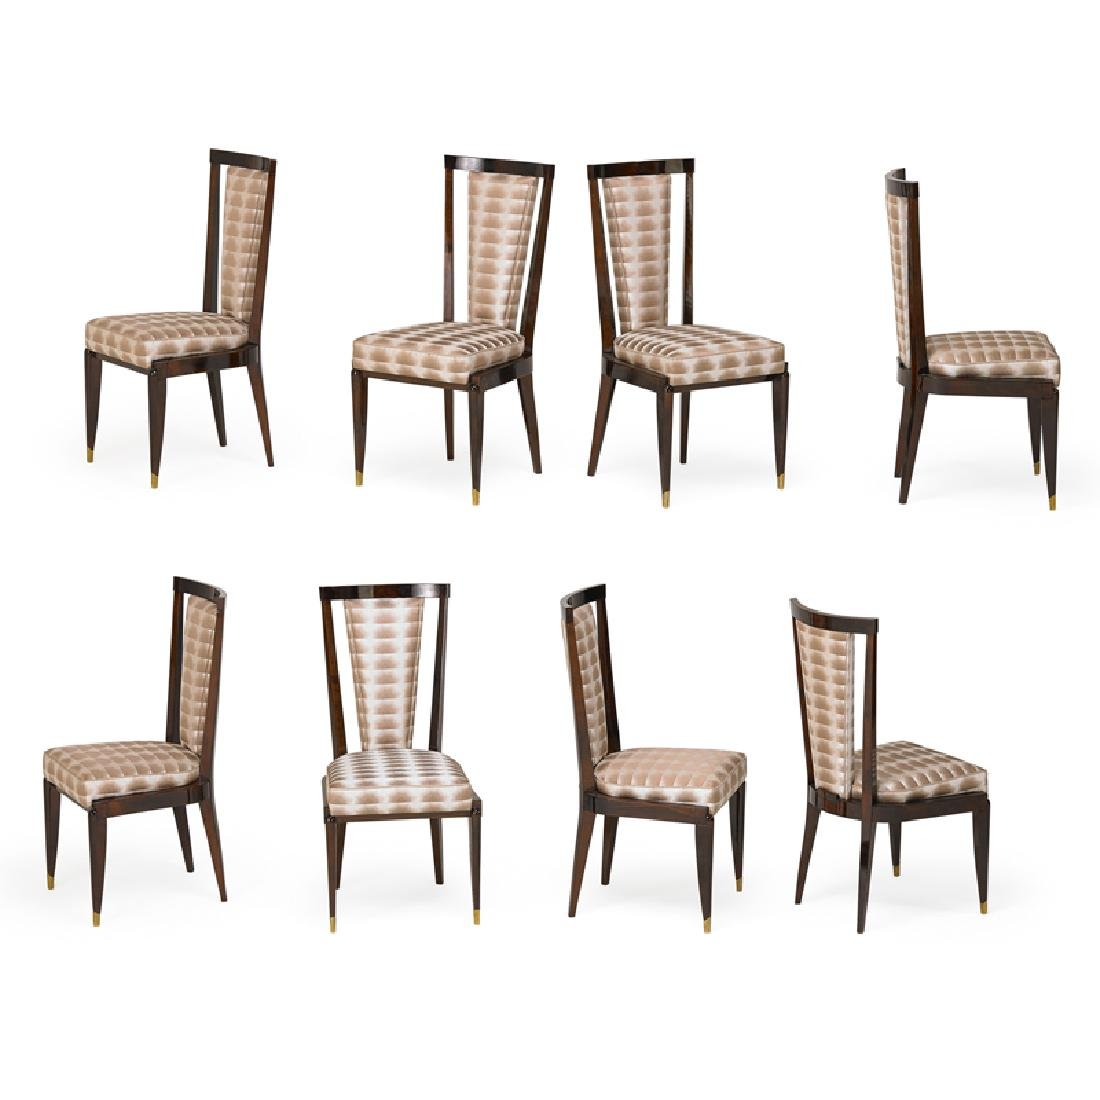 STYLE OF EMILE RUHLMANN DINING CHAIRS